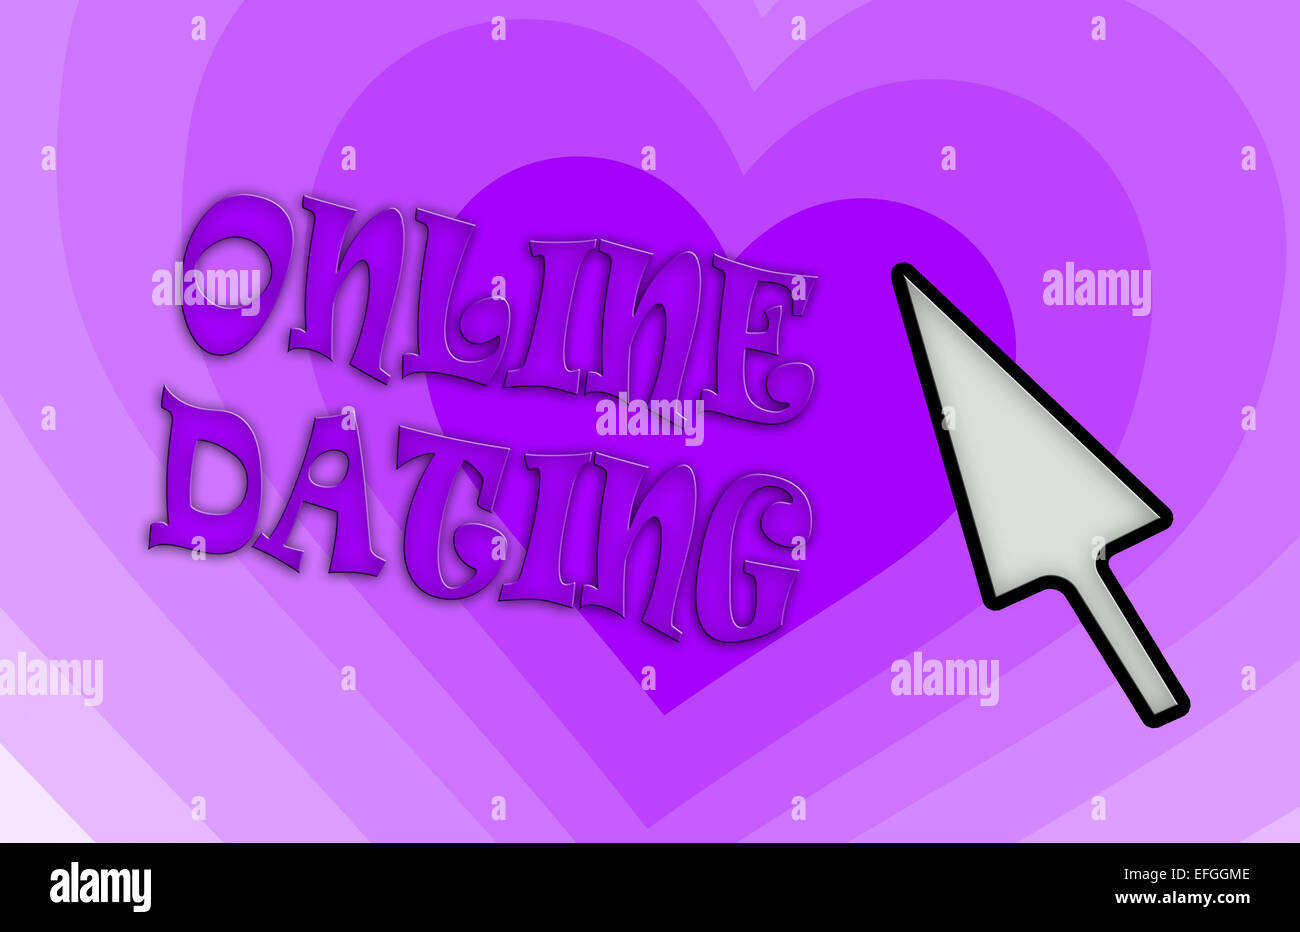 Heart shape backgound - Concept of dating - purple - Stock Image